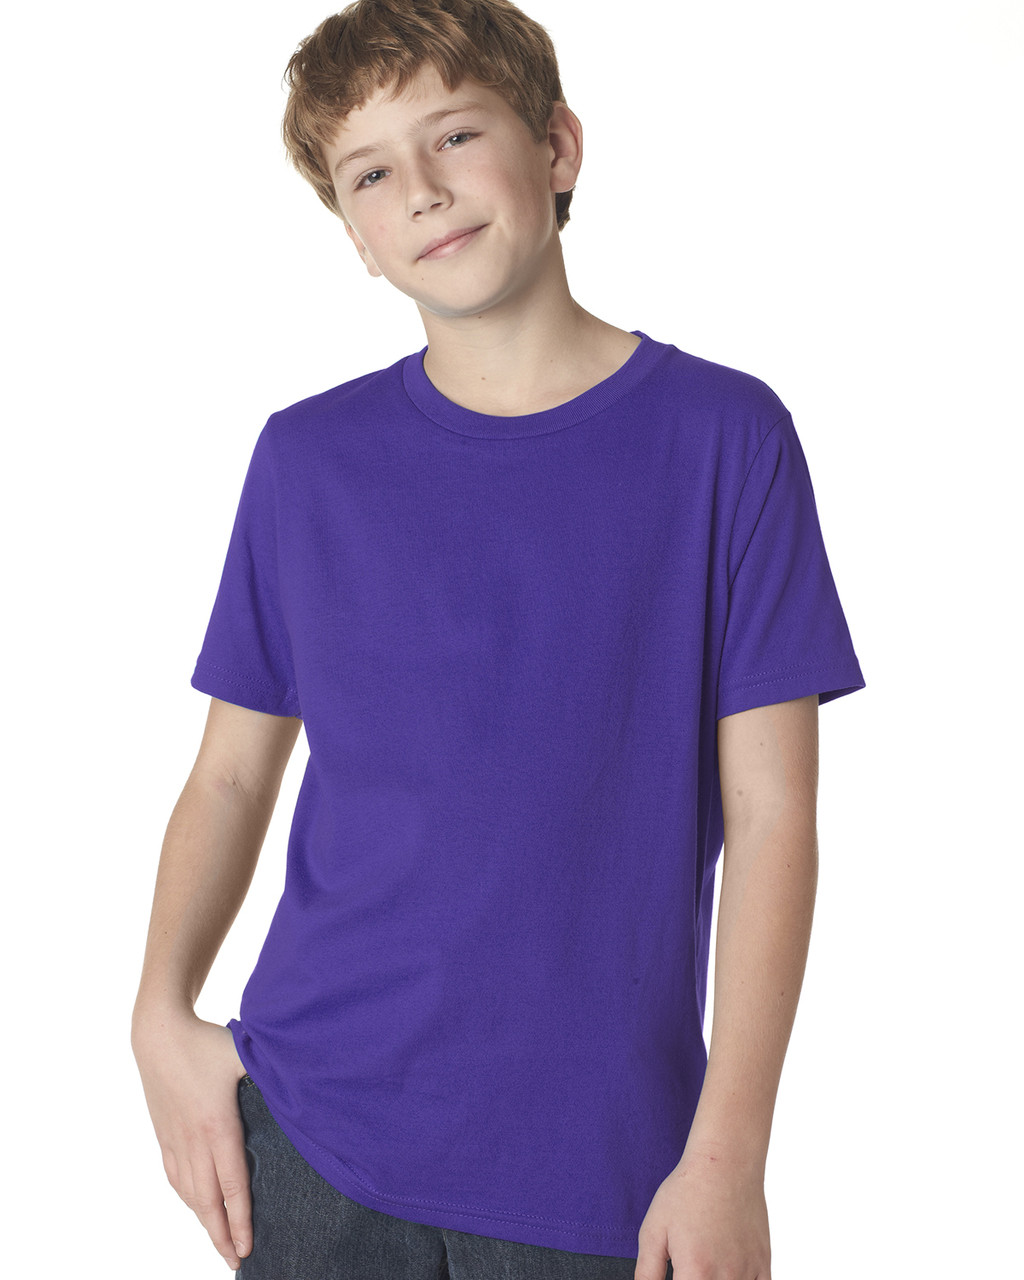 Purple Rush 3310 Next Level Boys' Premium Crew Tee | Blankclothing.ca